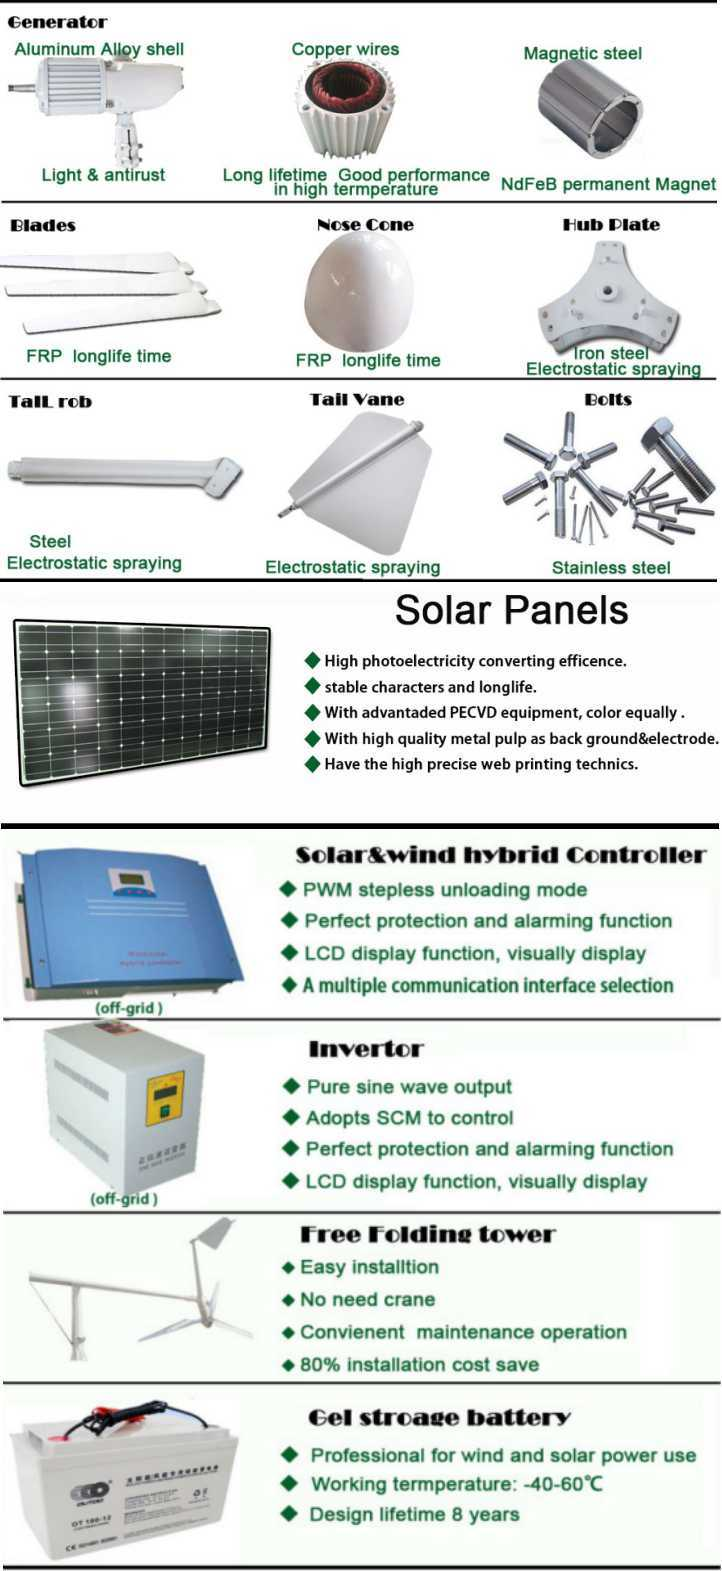 soalr energy utilization Smartflower pacific bring you best residential and commercial photovoltaic solar panels in hawaii buy solar energy power panel systems and.